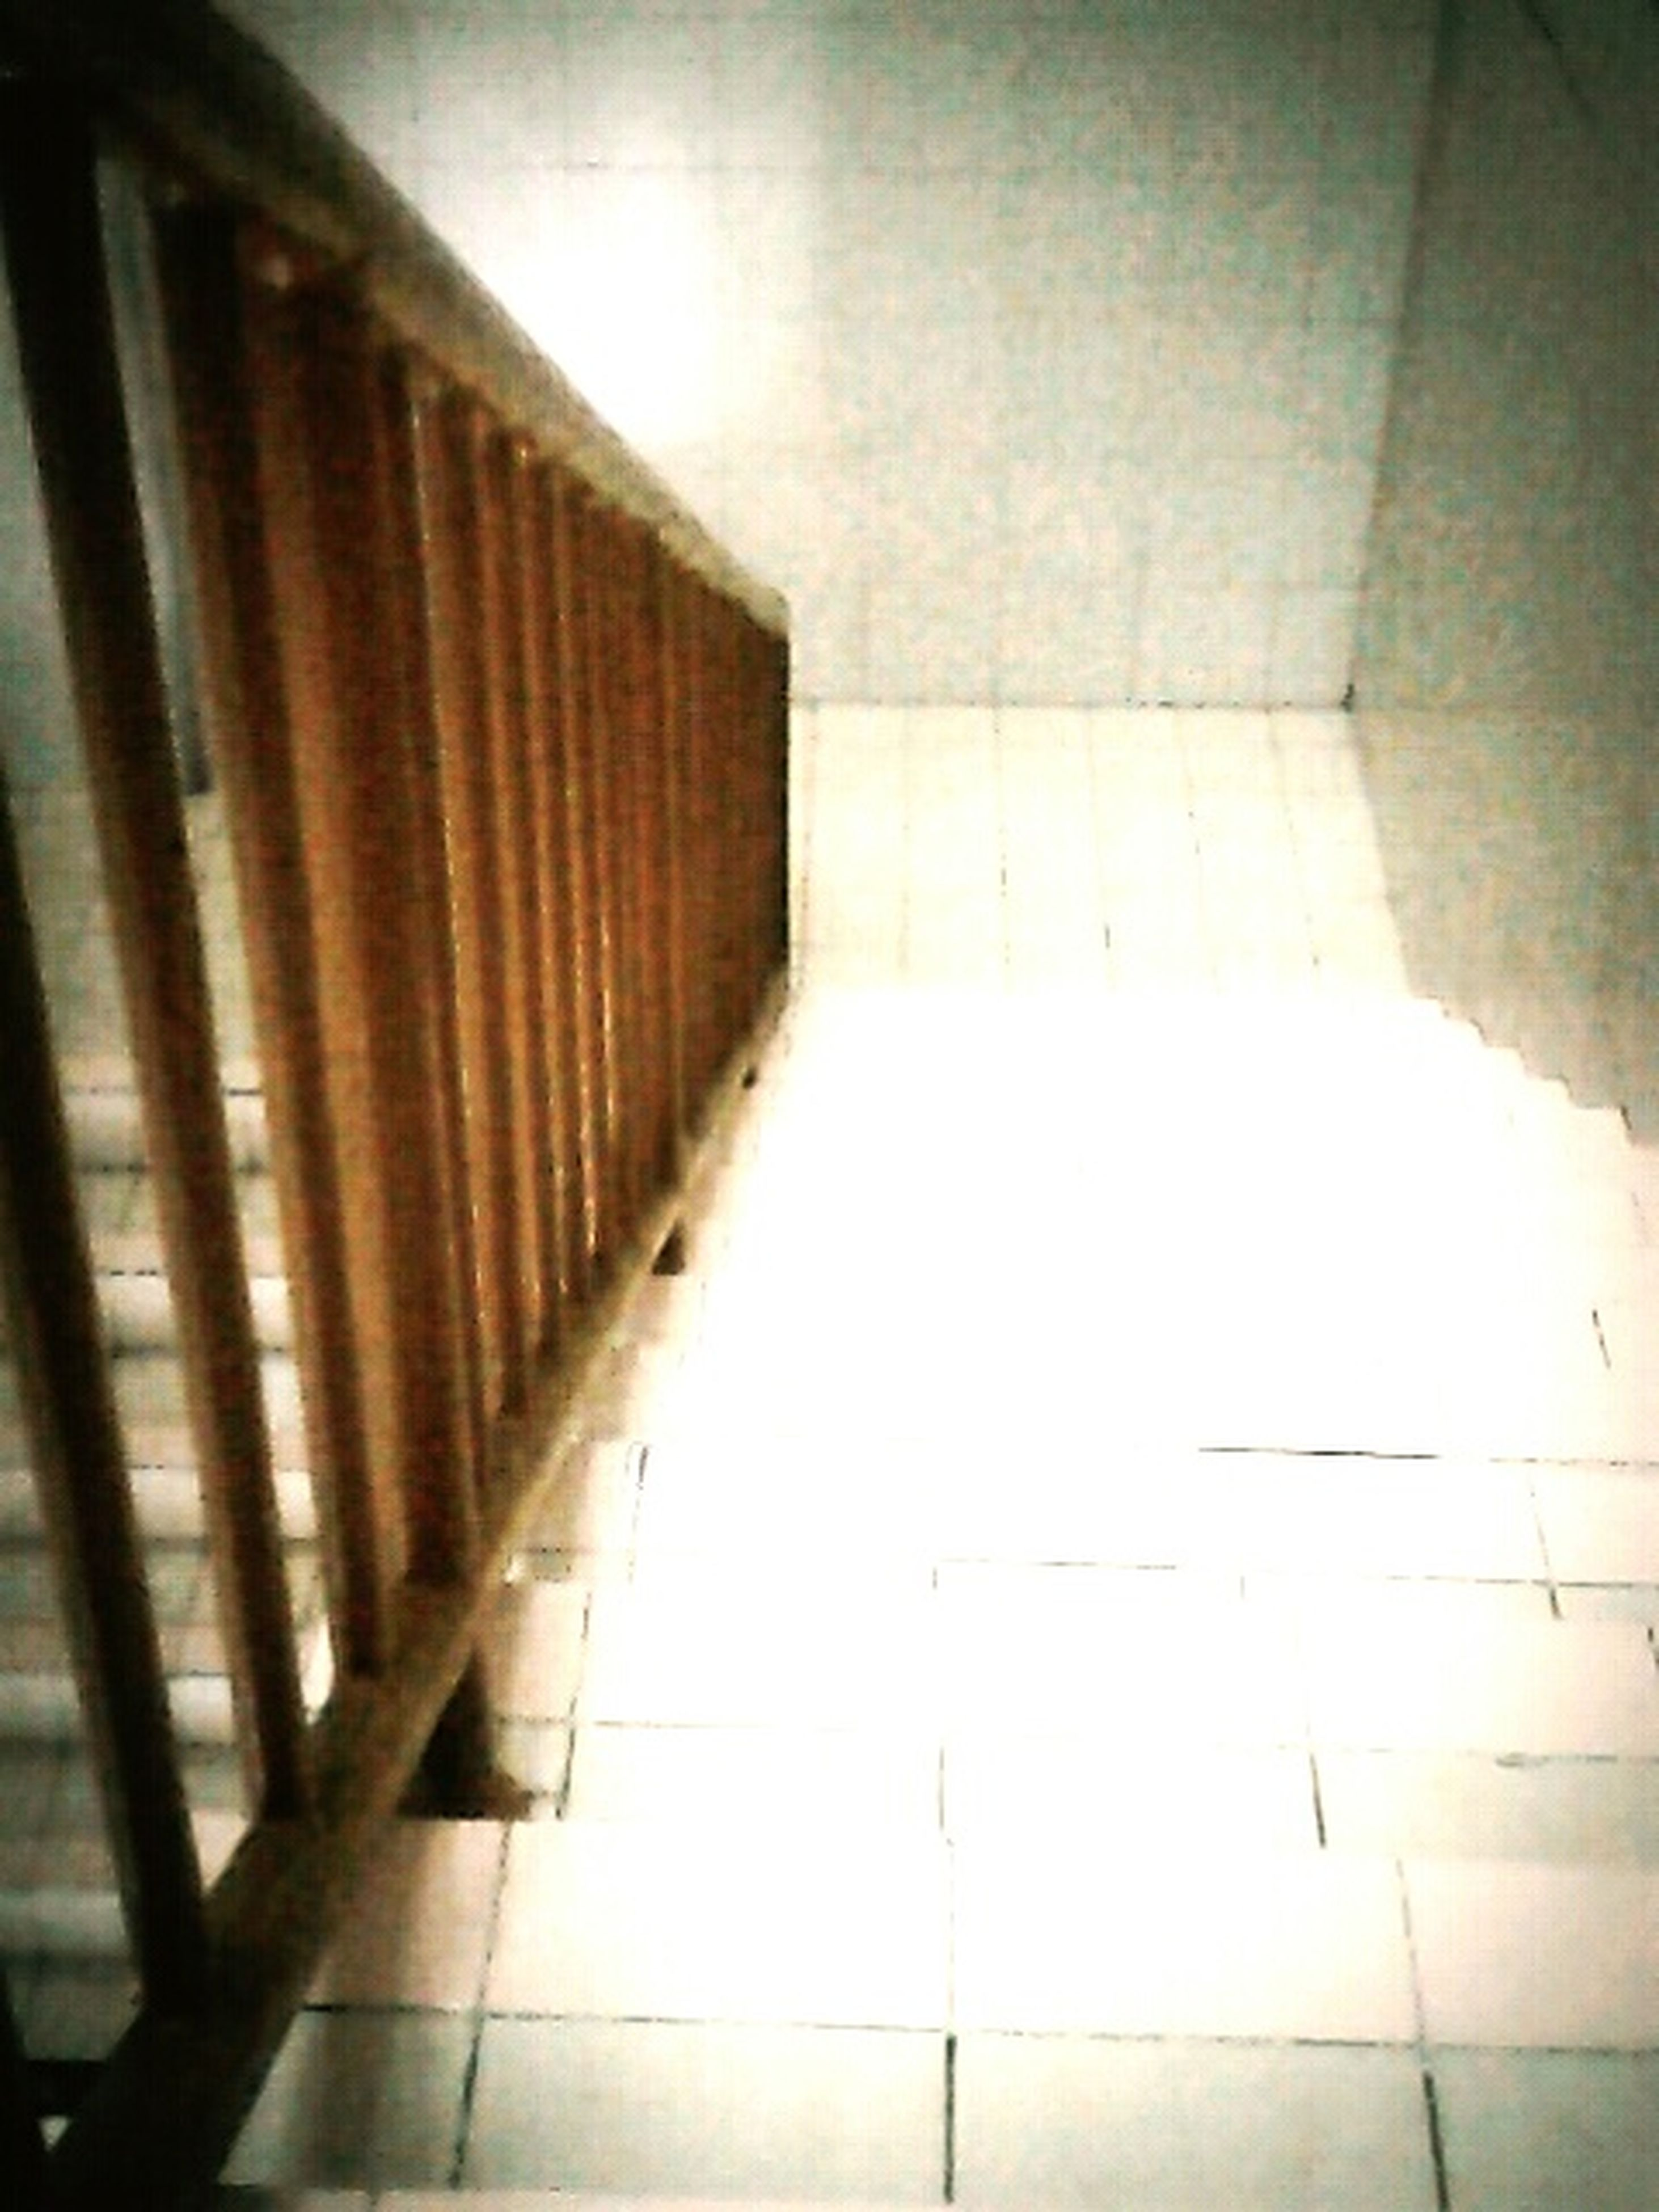 indoors, architecture, tiled floor, built structure, corridor, flooring, empty, wall - building feature, tile, ceiling, absence, the way forward, building, modern, shadow, sunlight, wall, no people, home interior, illuminated